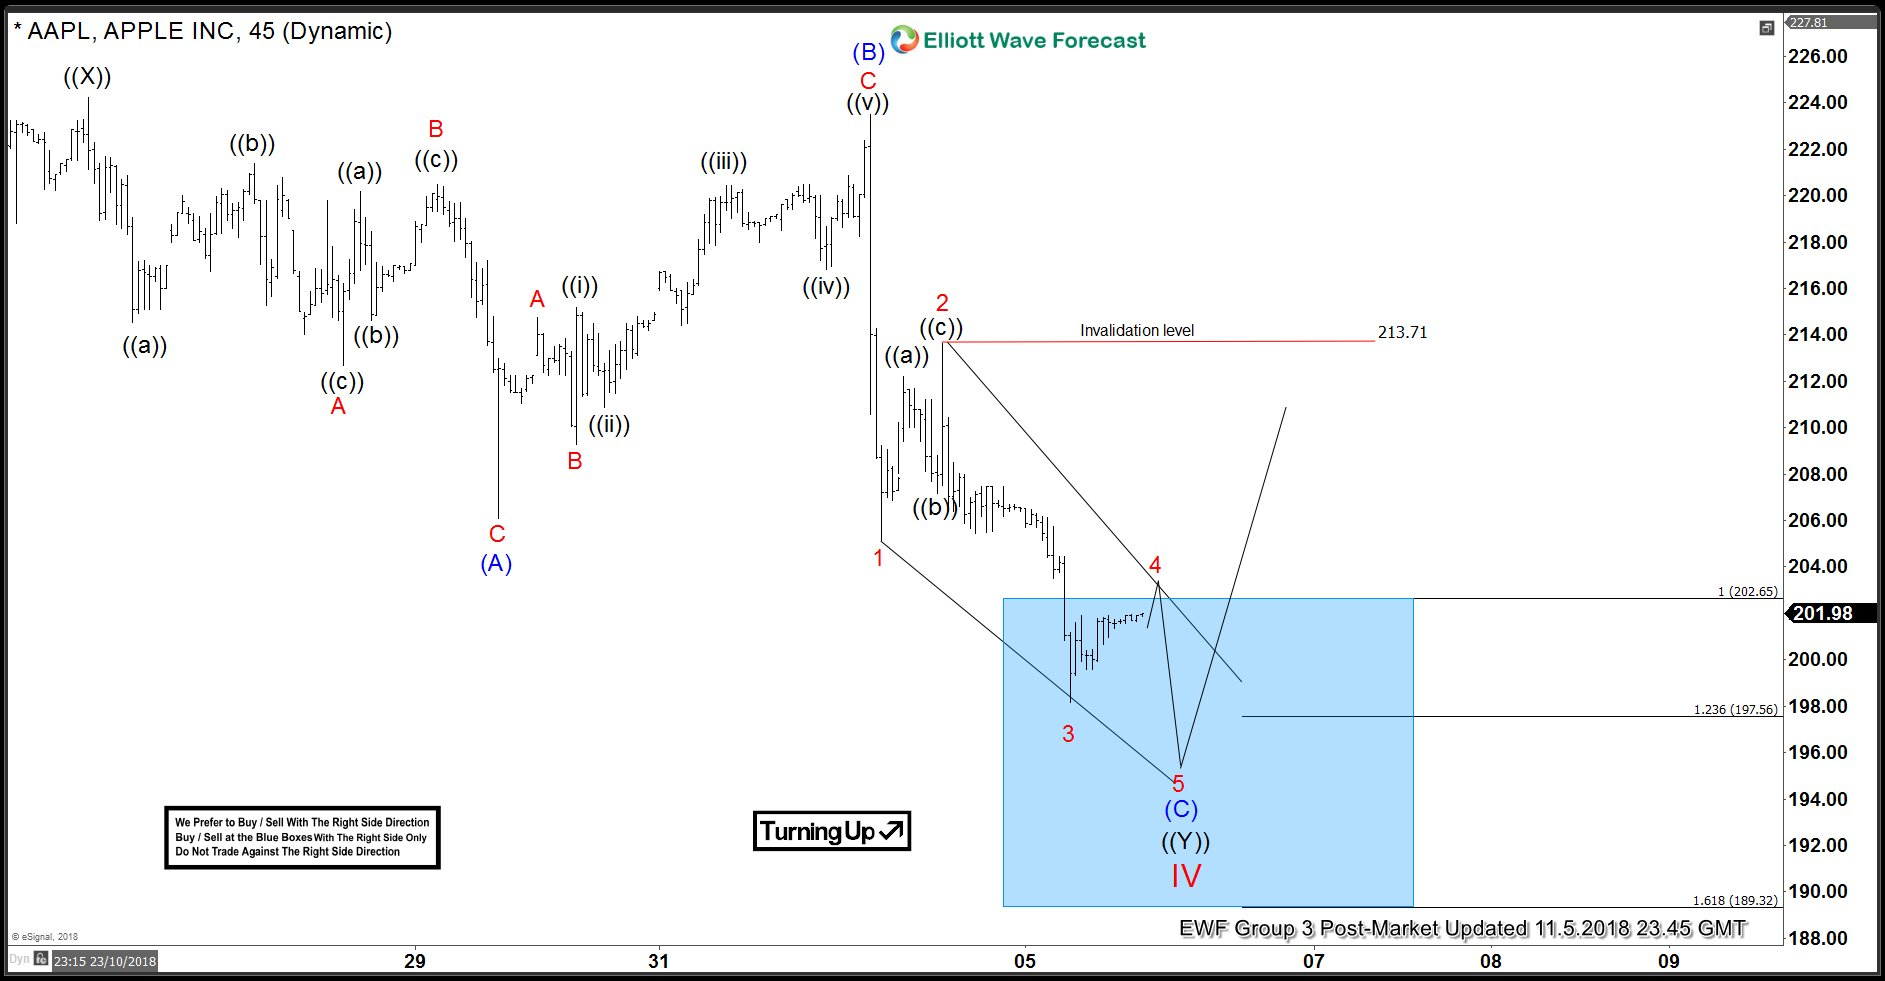 AAPL 1 hour Elliott Wave